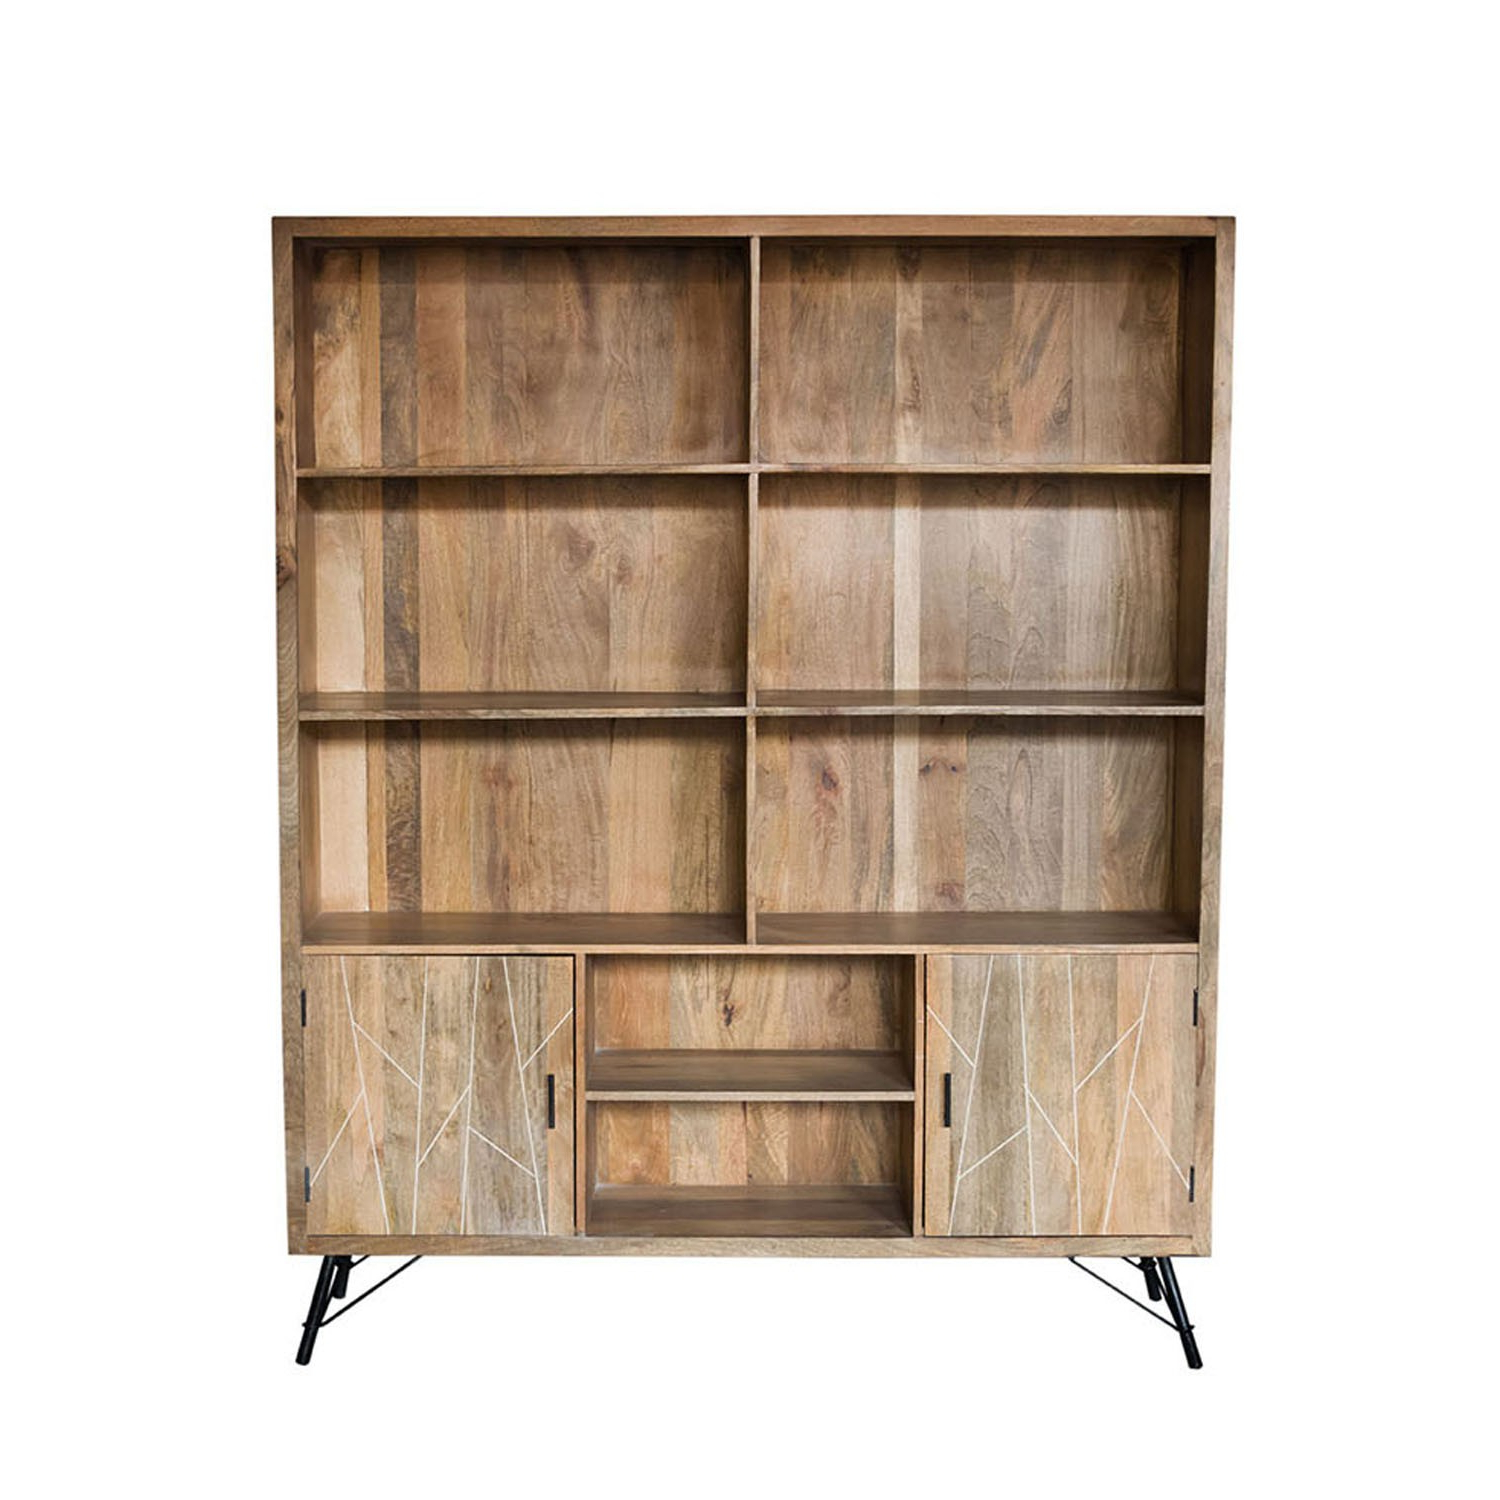 Current Natural Mango Wood Finish Sideboards For Mosaic Small Bookshelf/iron & Mango Wood/natural Finish/33*17* (View 16 of 20)